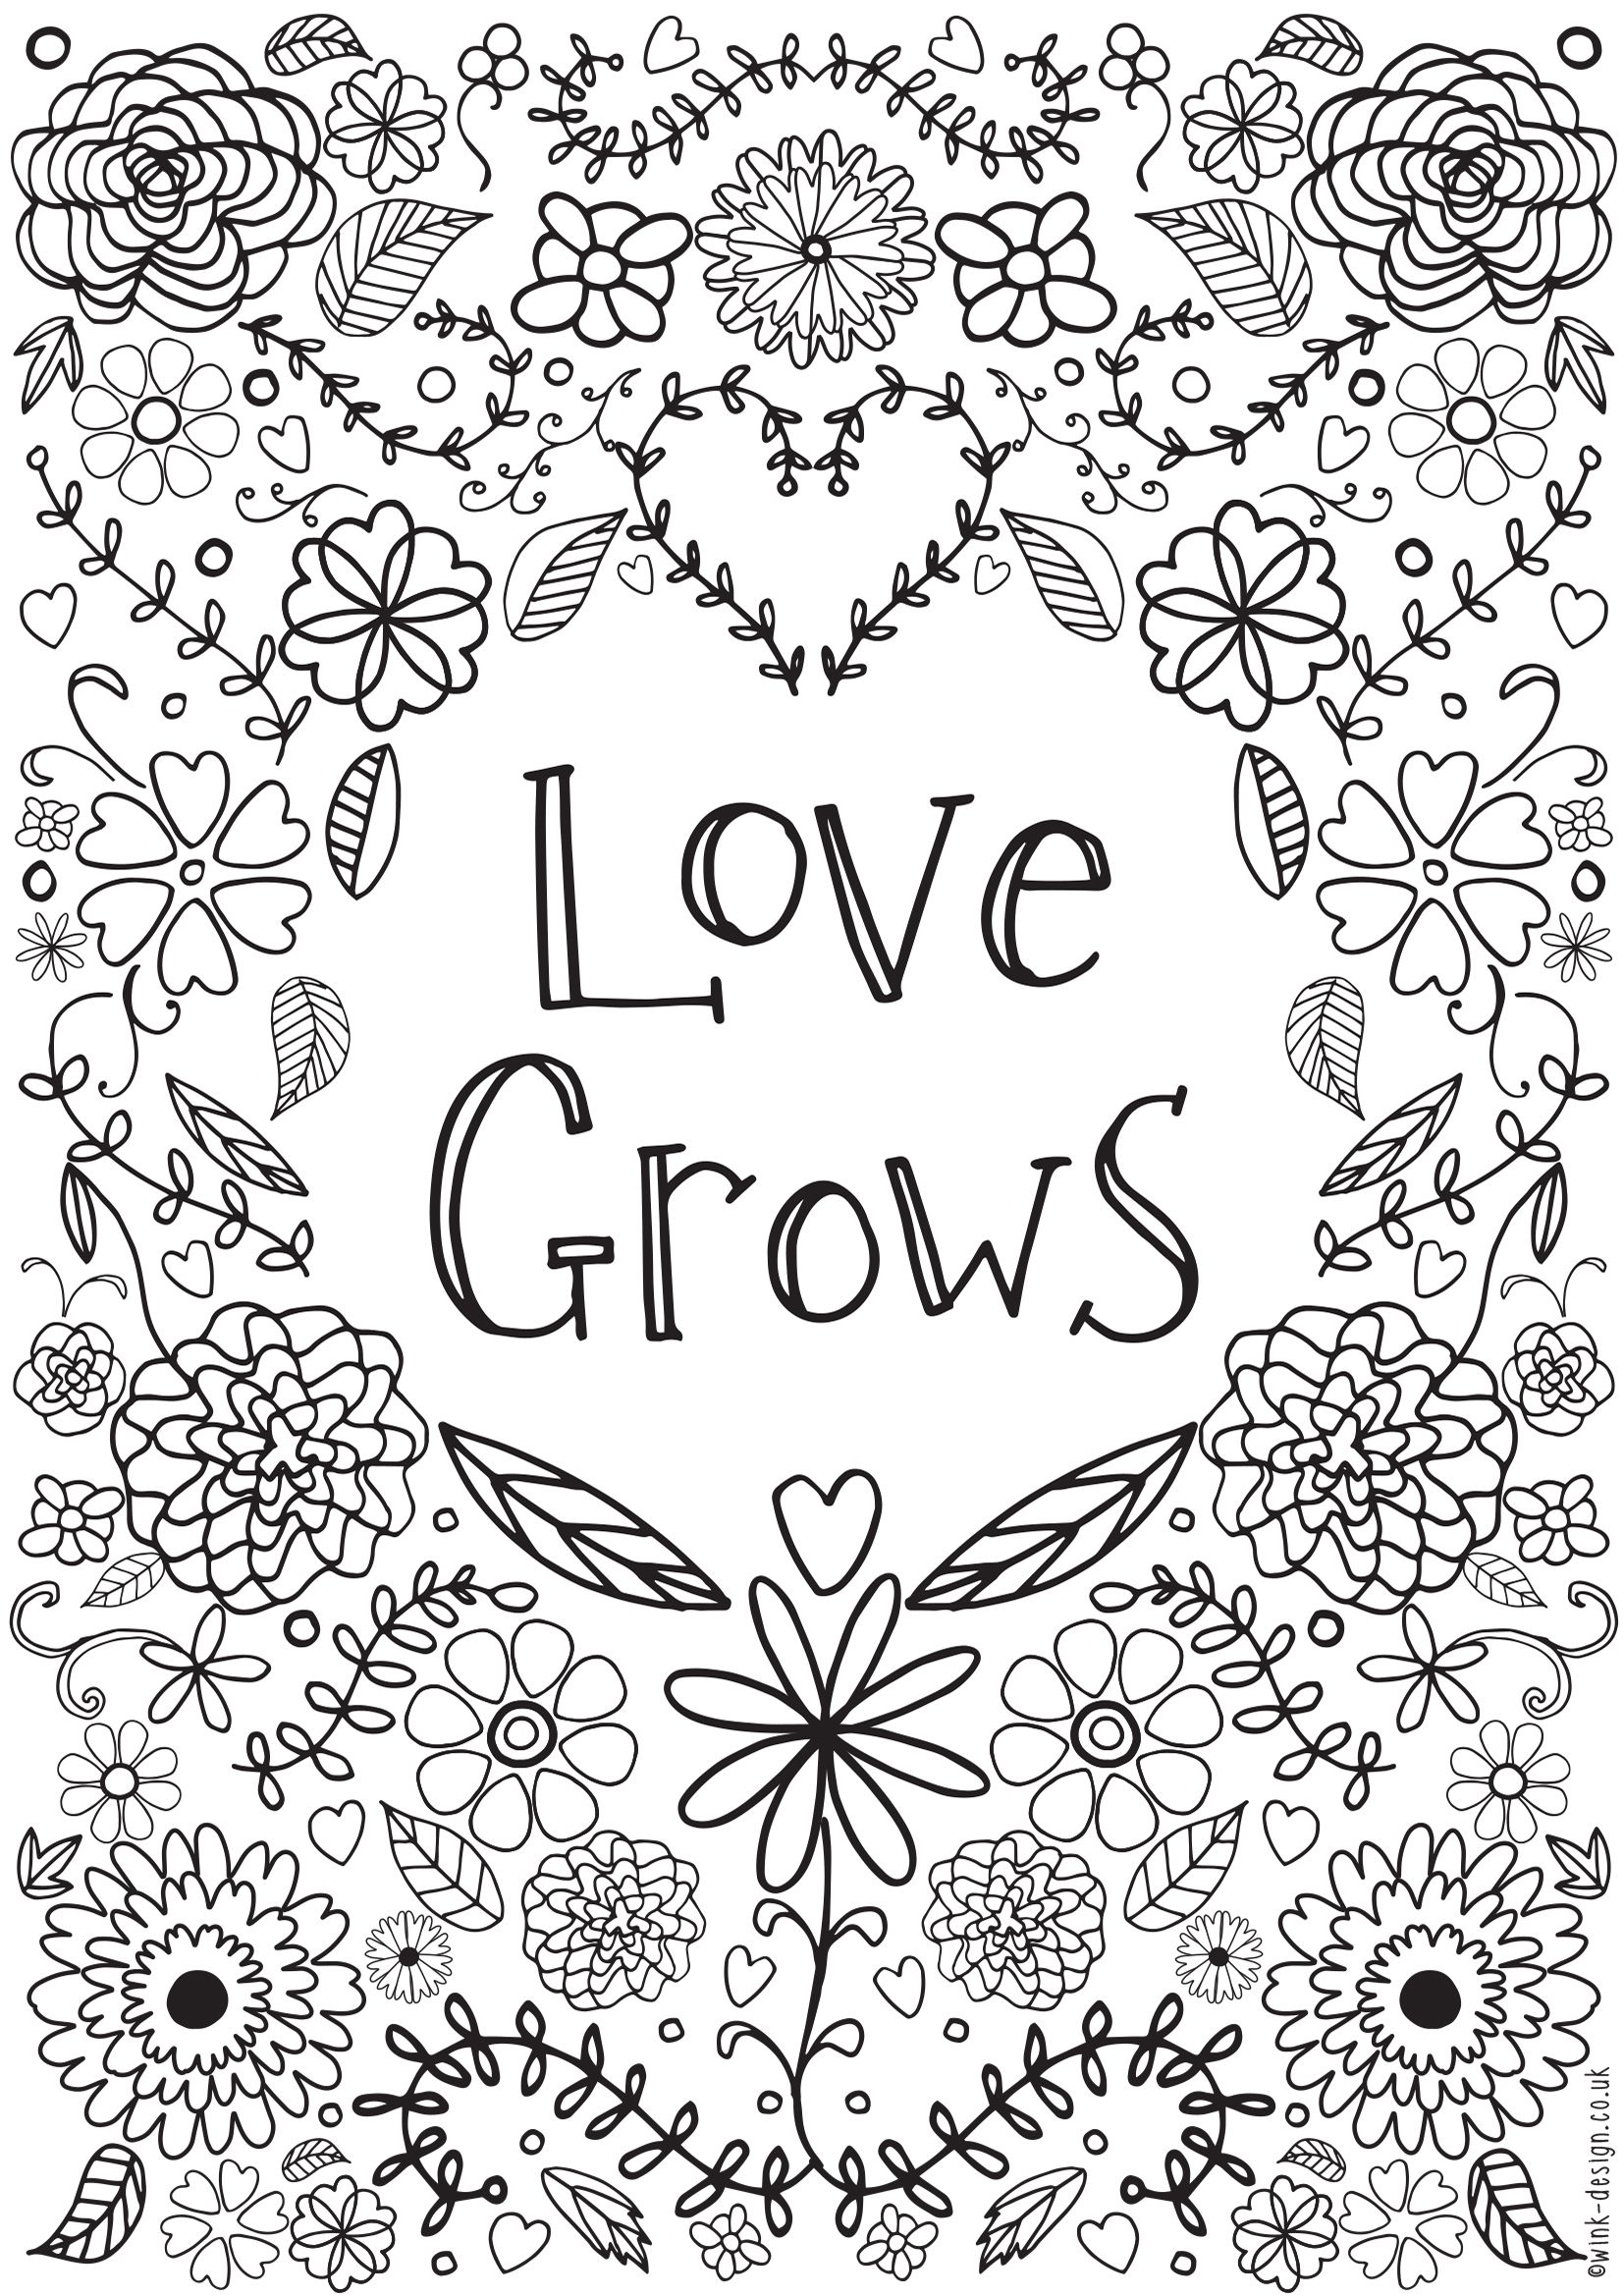 Free coloring pages adults printable - Free Printable Adult Colouring Sheet With Inspirational Quote